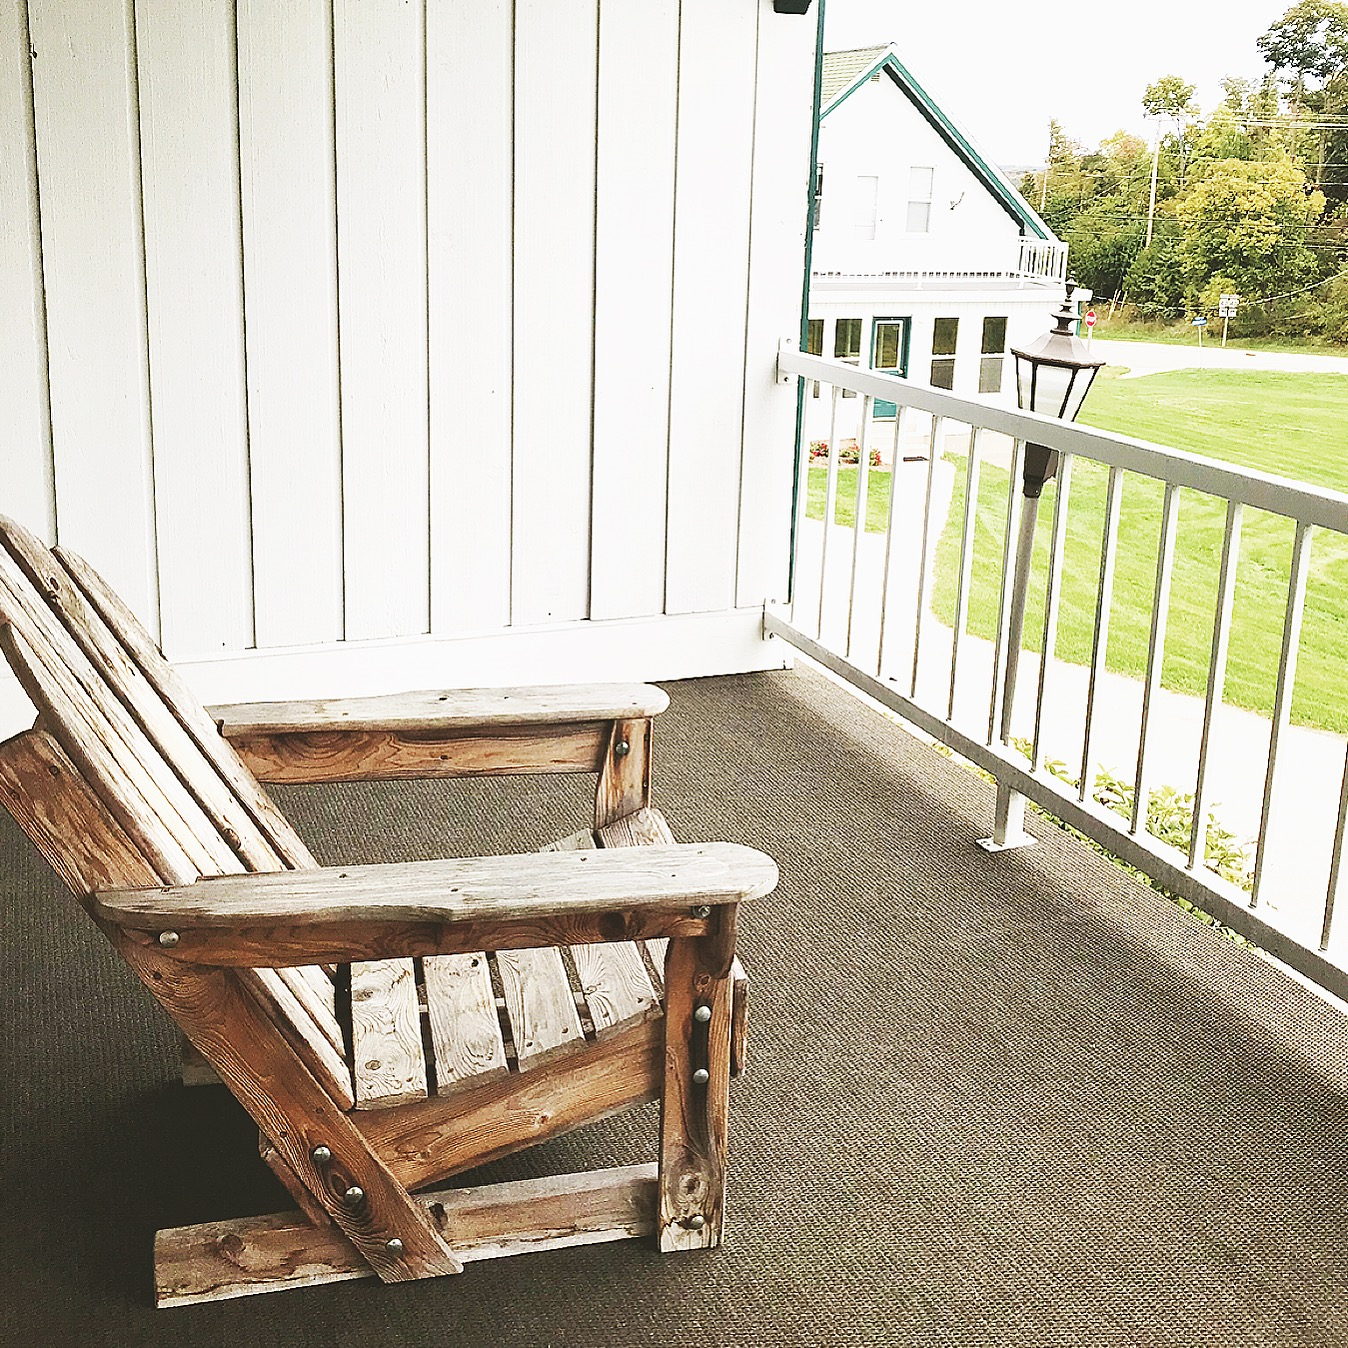 Between the Phases Top 12 Travel Destinations in Door County, Wisconsin in Sister Bay at the Birchwood Lodge